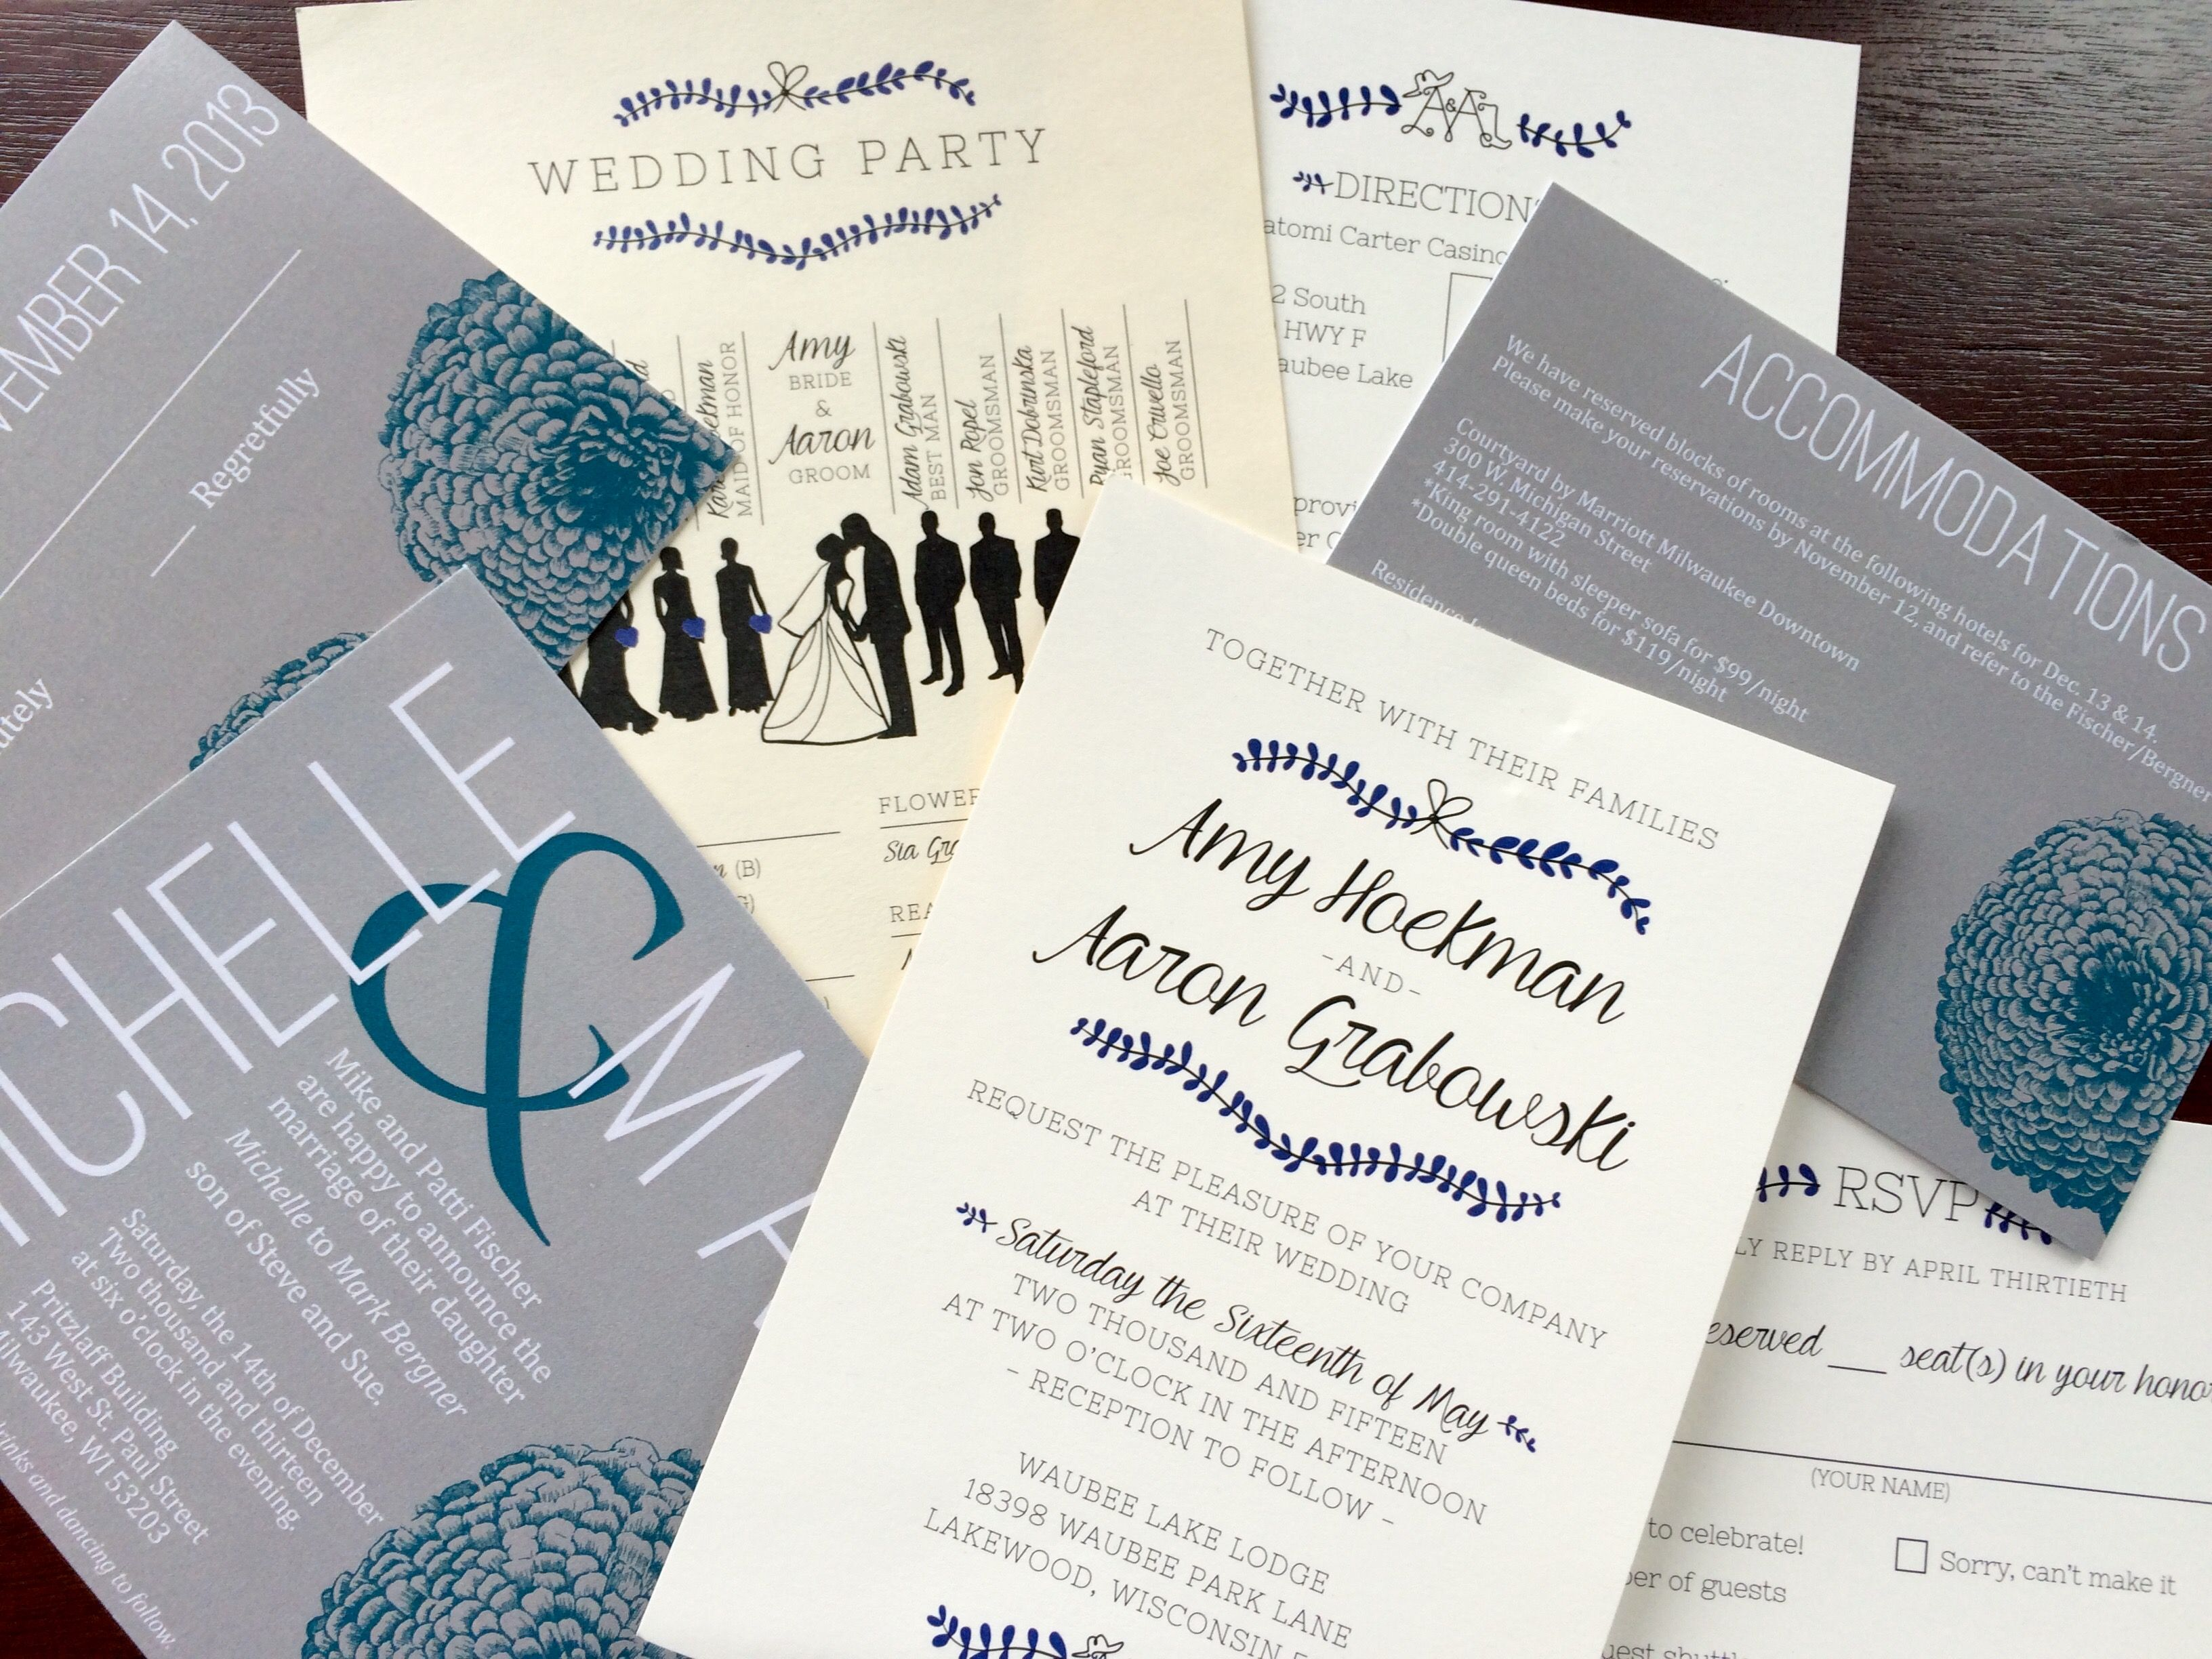 5 Tips For The Perfect Wedding Invitations │ Markel Wedding ...